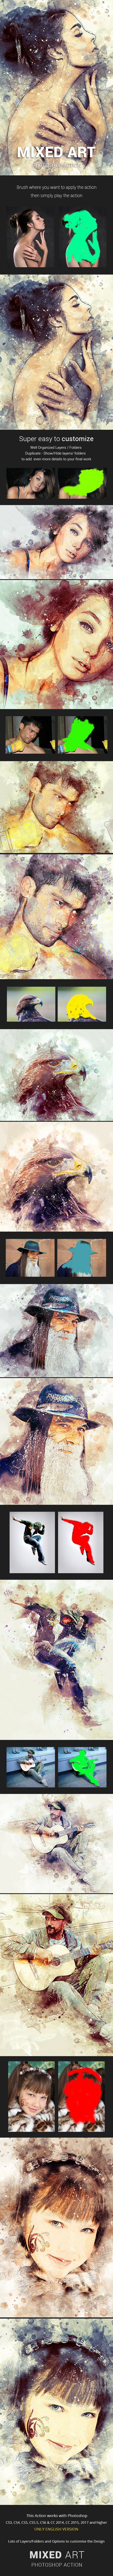 Mixed Art Photoshop Action - Photo Effects Actions